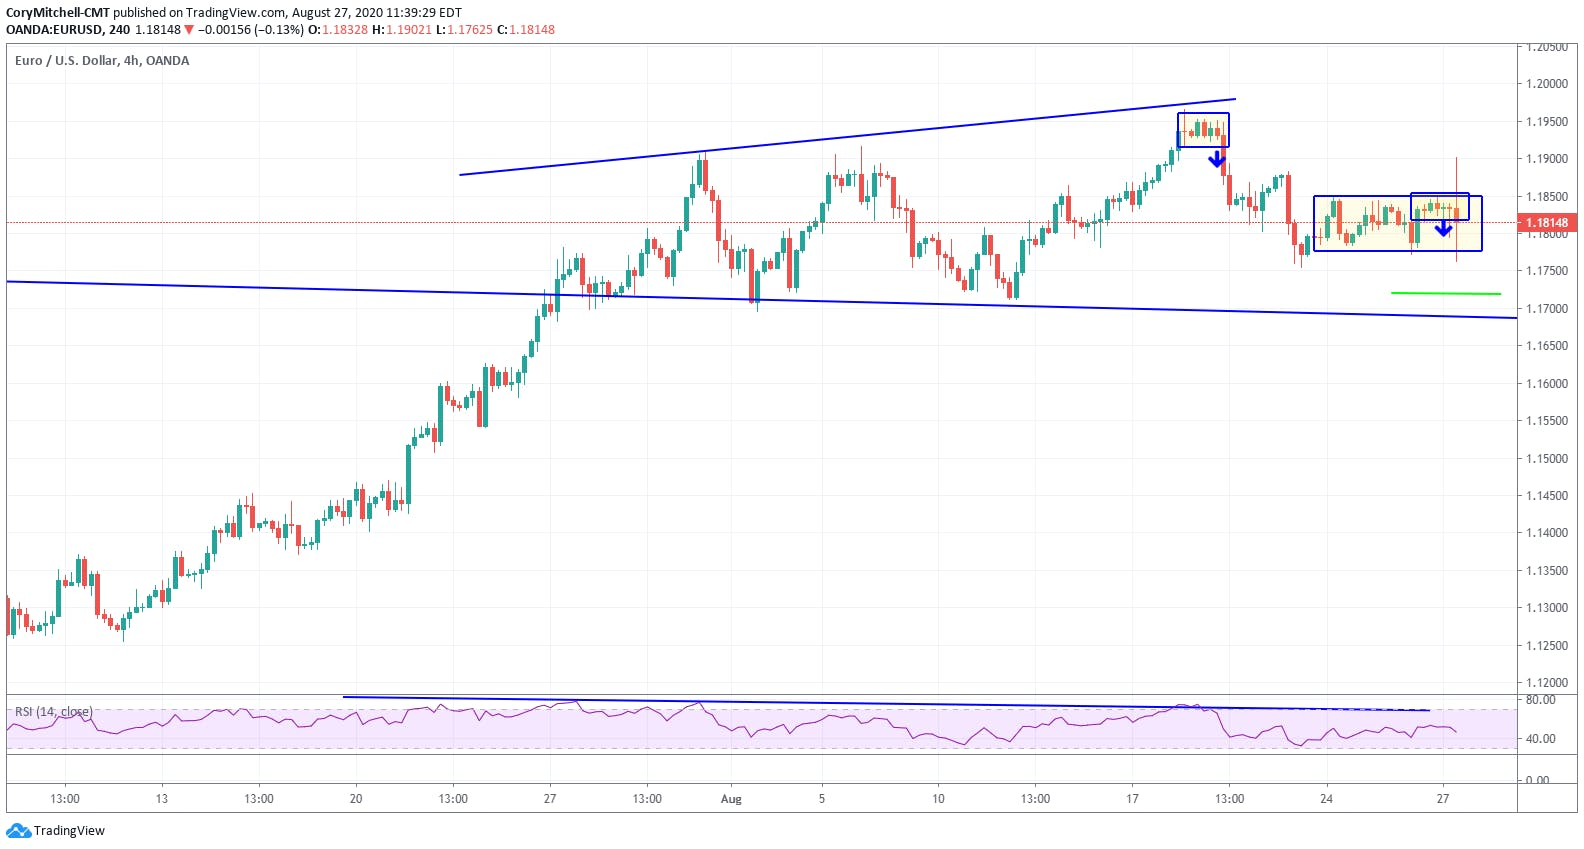 EURUSD 4-hour chart with consolidation breakouts to downside near long-term resistance Aug. 27 2020